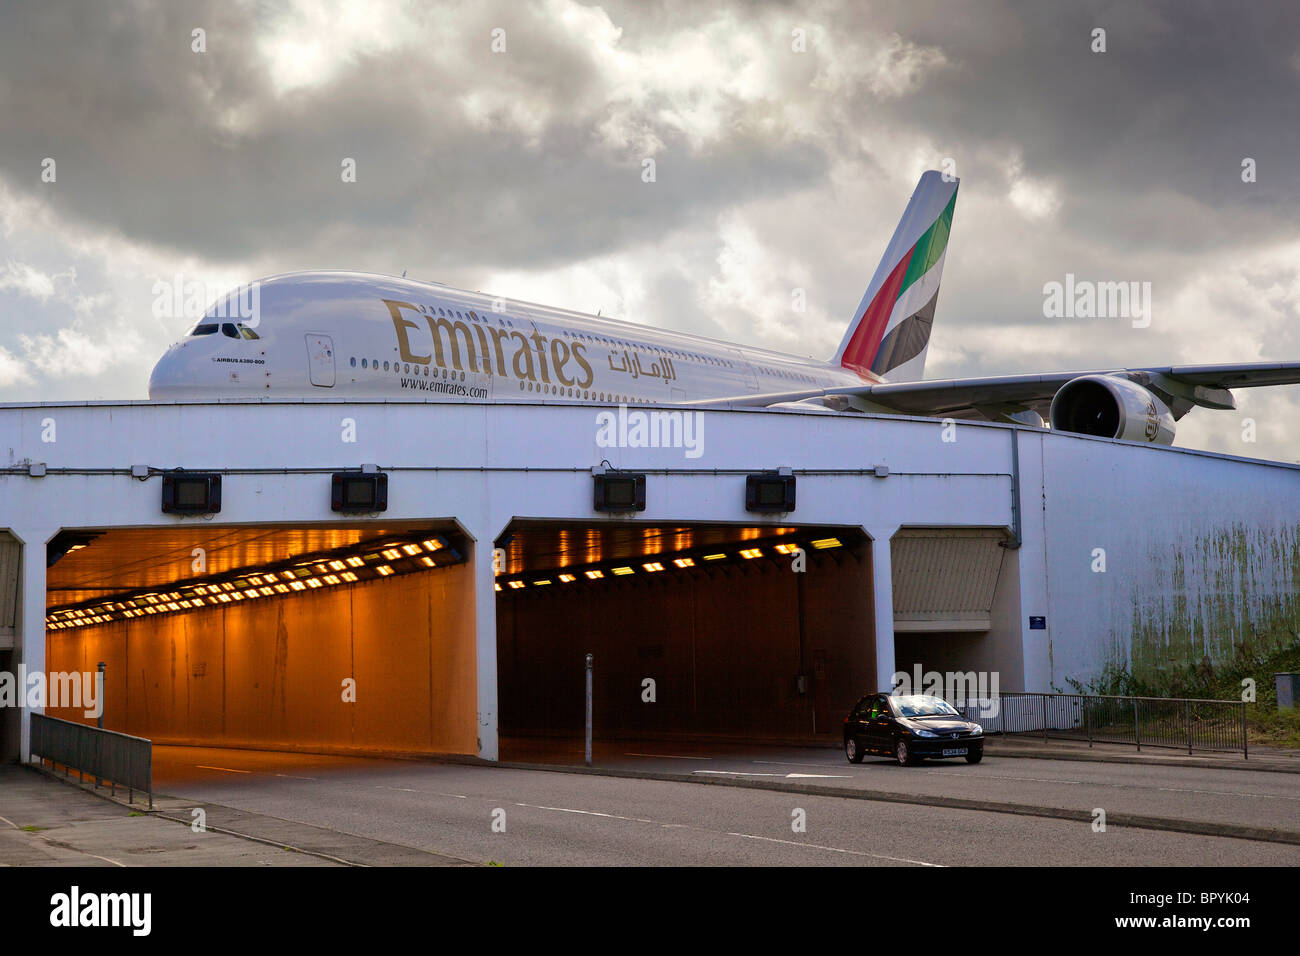 Emirates Airbus A380-800 arrives at Manchester airport, taxis across roadway inbound on the daily service EK017 - Stock Image